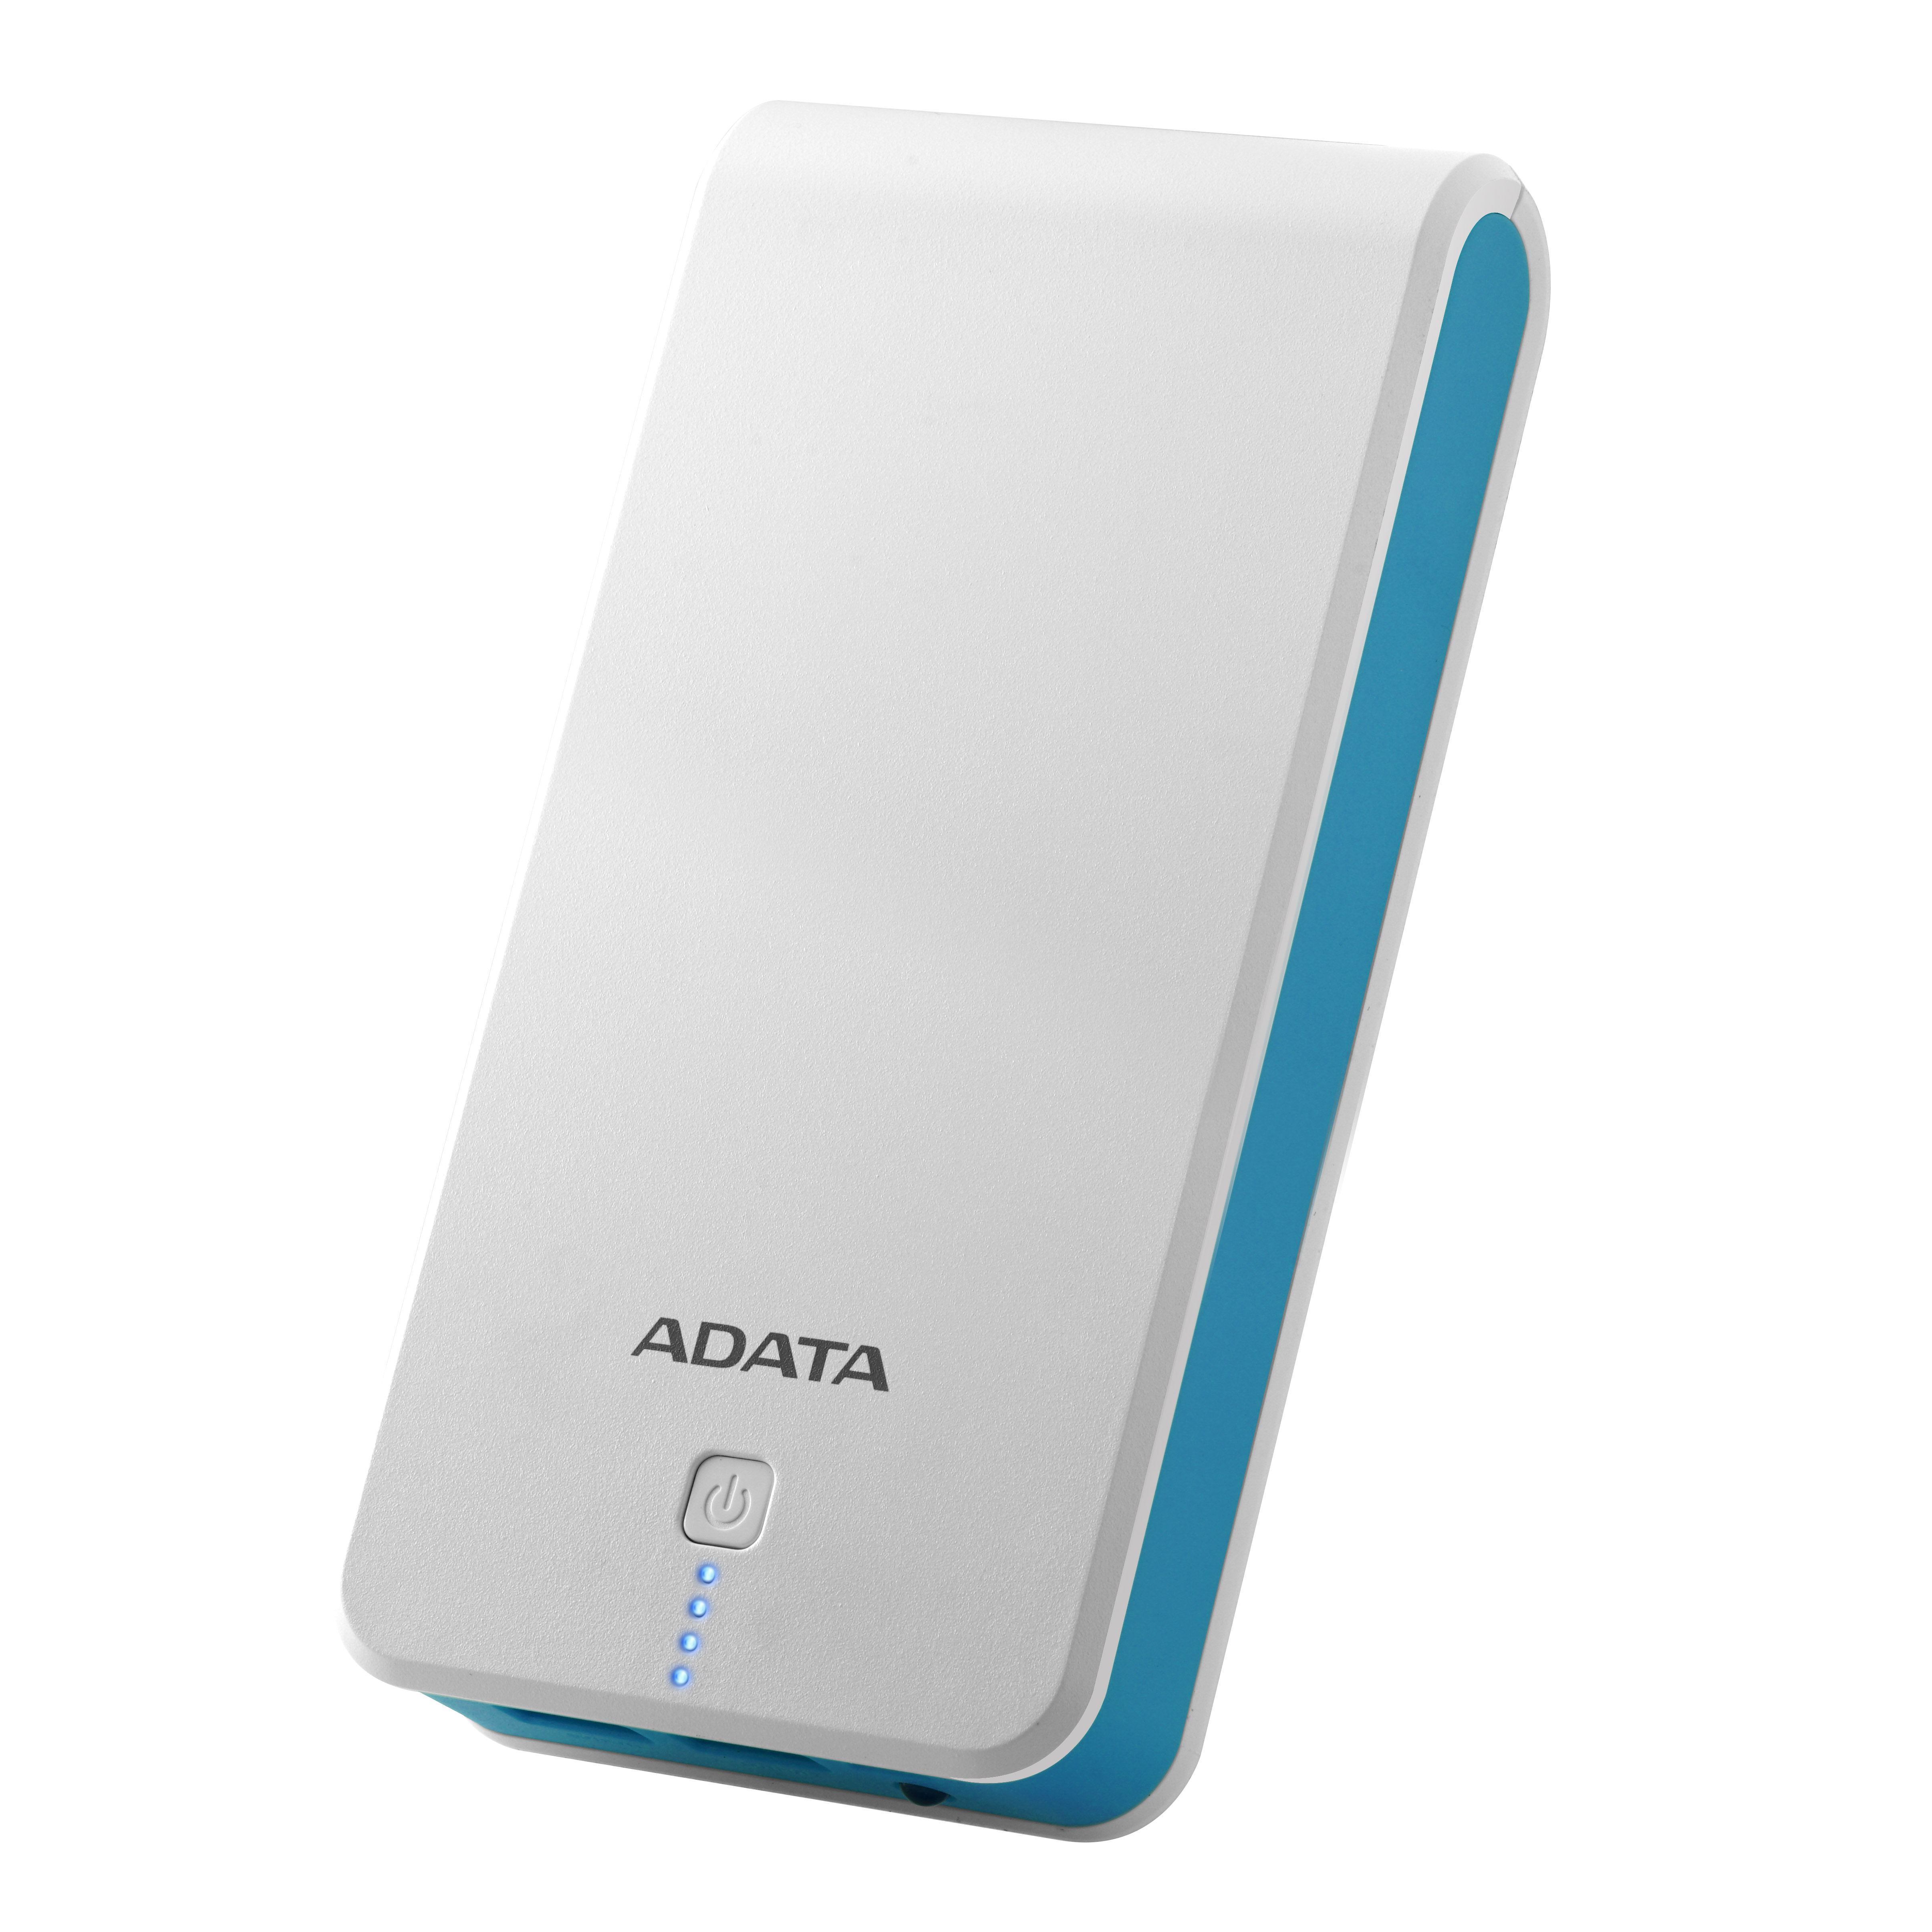 Power Bank ADATA P20100 20100mAh, white